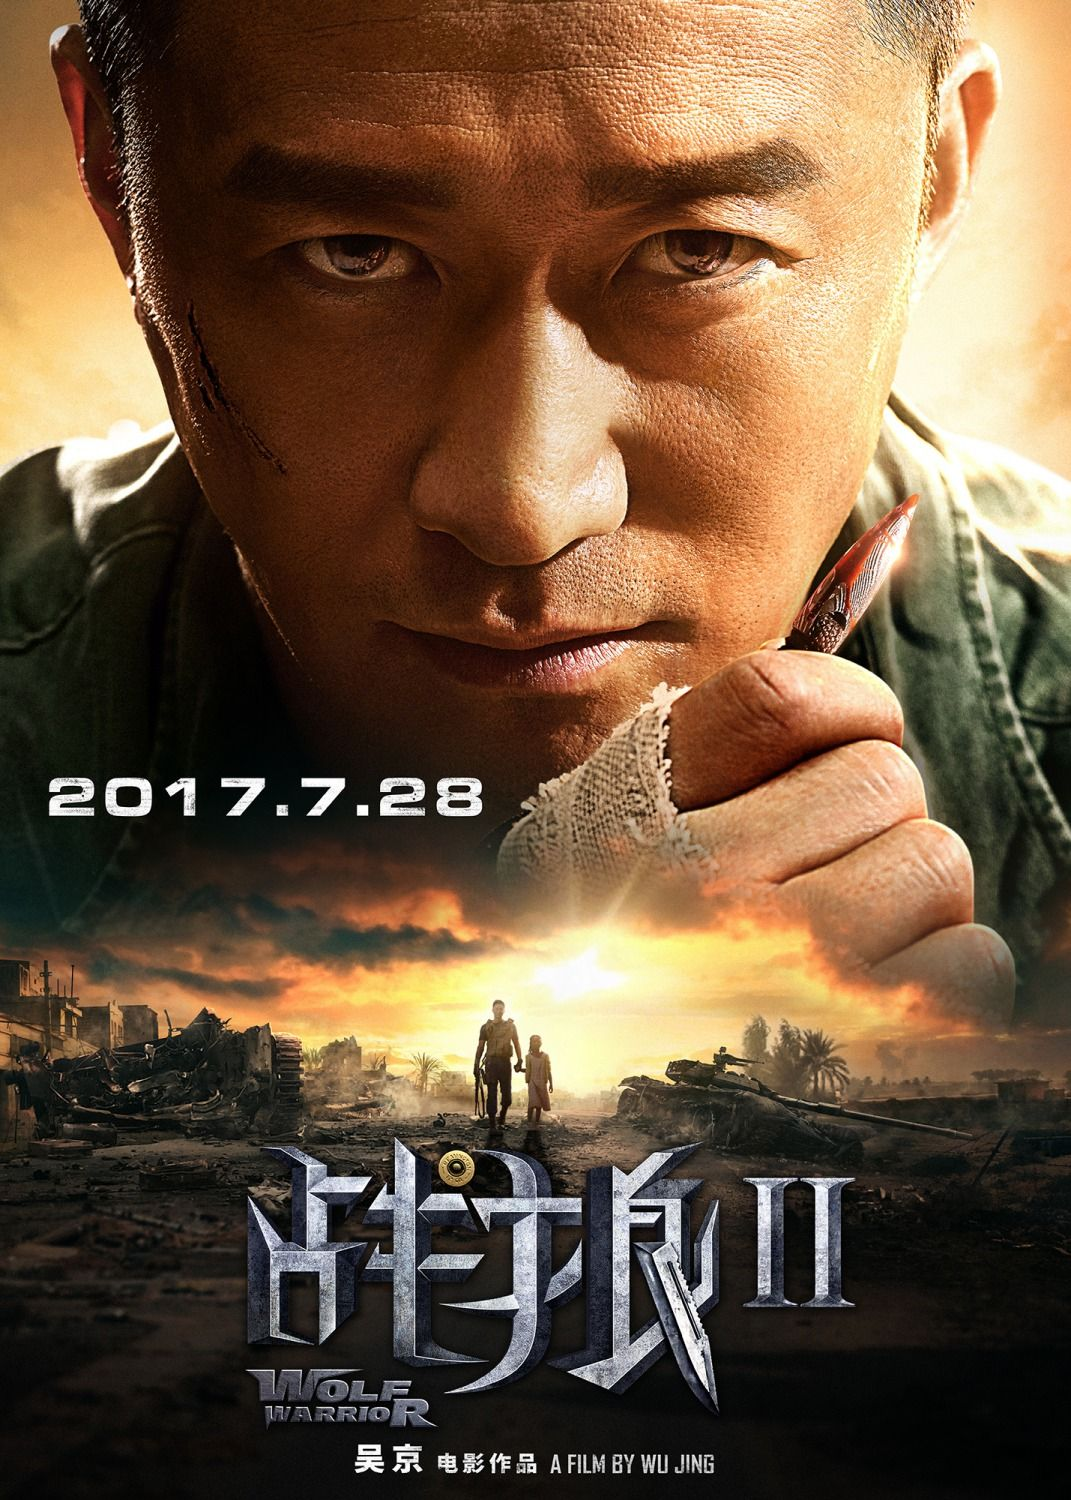 Review Wolf Warrior Ii A K A Zhan Lang Ii 2017 I Ll Take Propaganda And Melodrama Any Day If The Action Is This Good Wolf Warriors Warrior Movie Full Movies Online Free